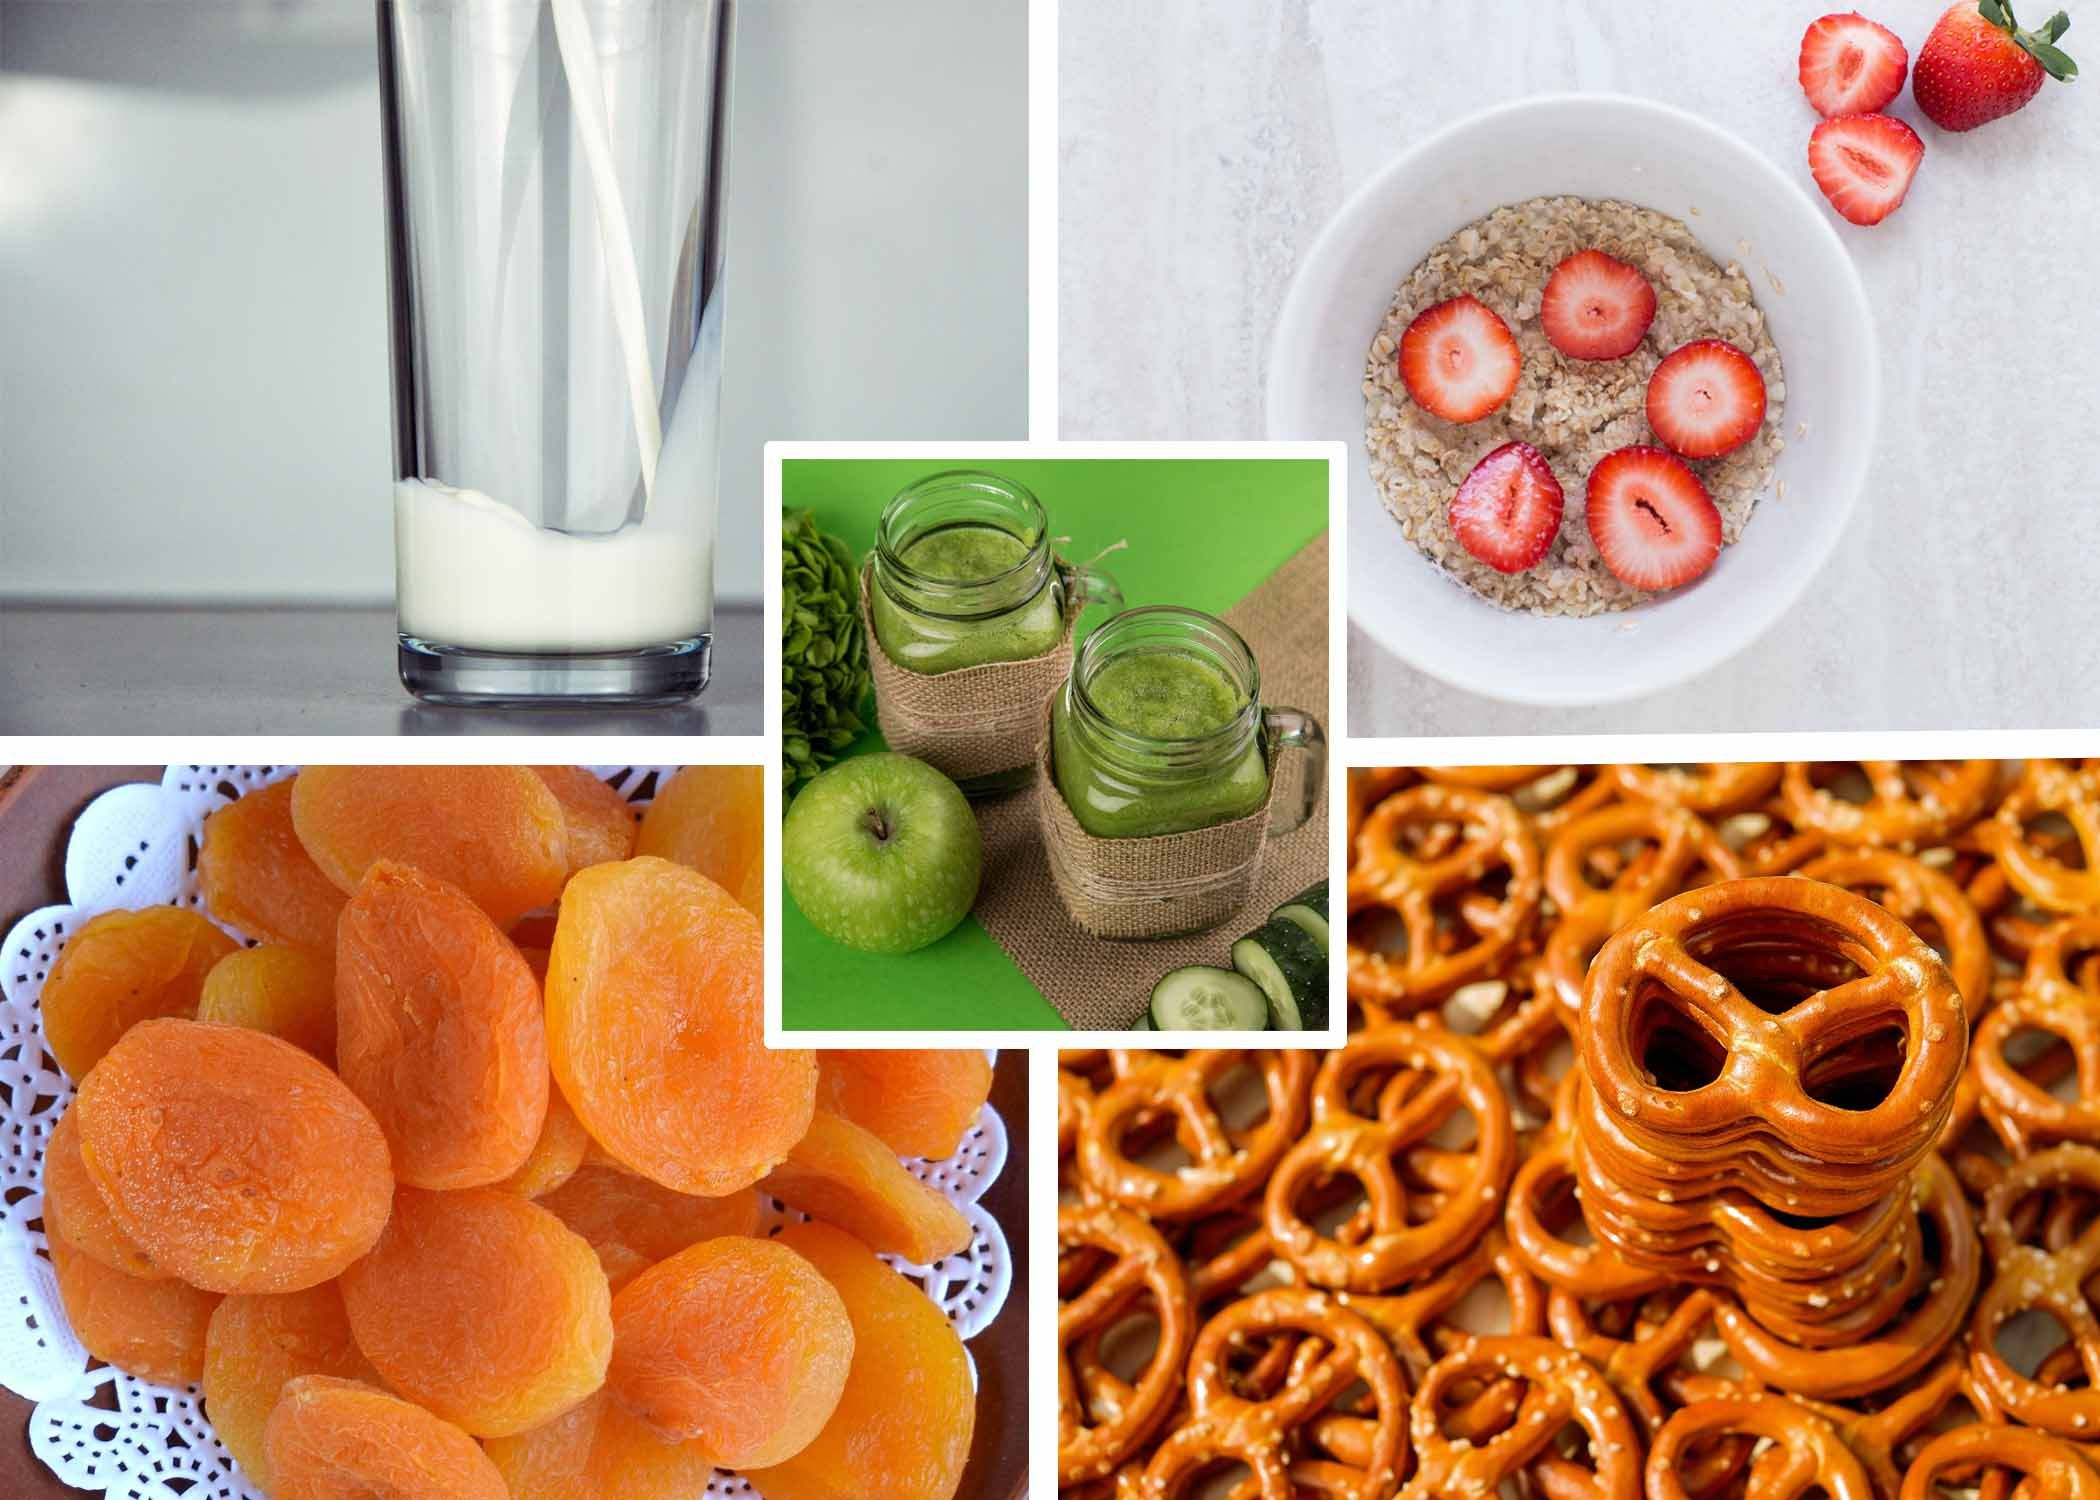 50 Healthy Foods That Are Secretly Unhealthy